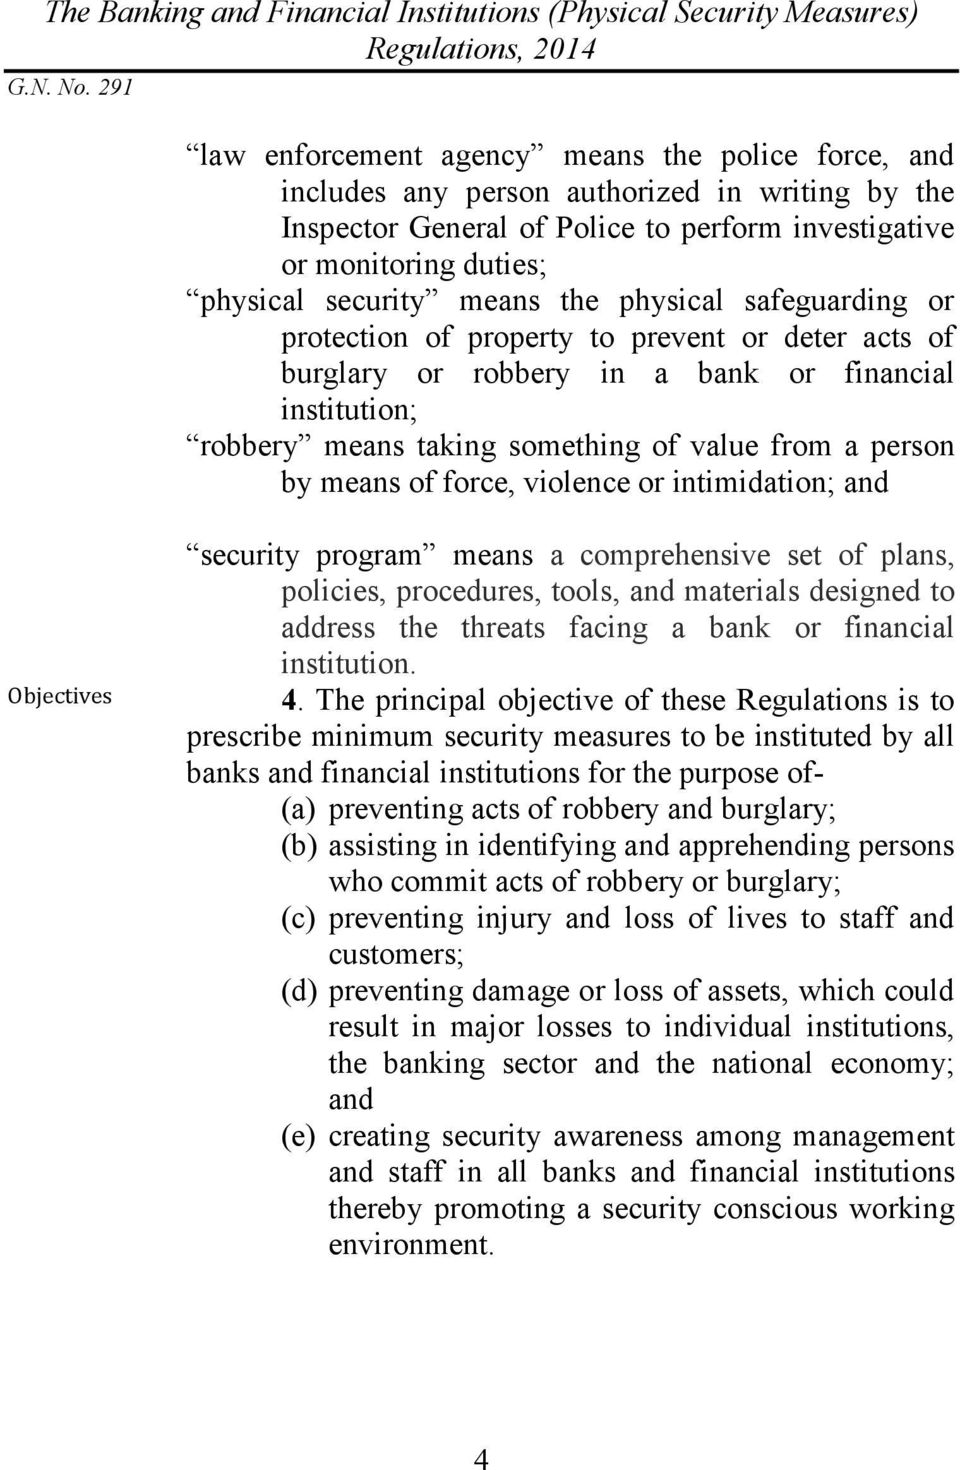 of force, violence or intimidation; and Objectives security program means a comprehensive set of plans, policies, procedures, tools, and materials designed to address the threats facing a bank or